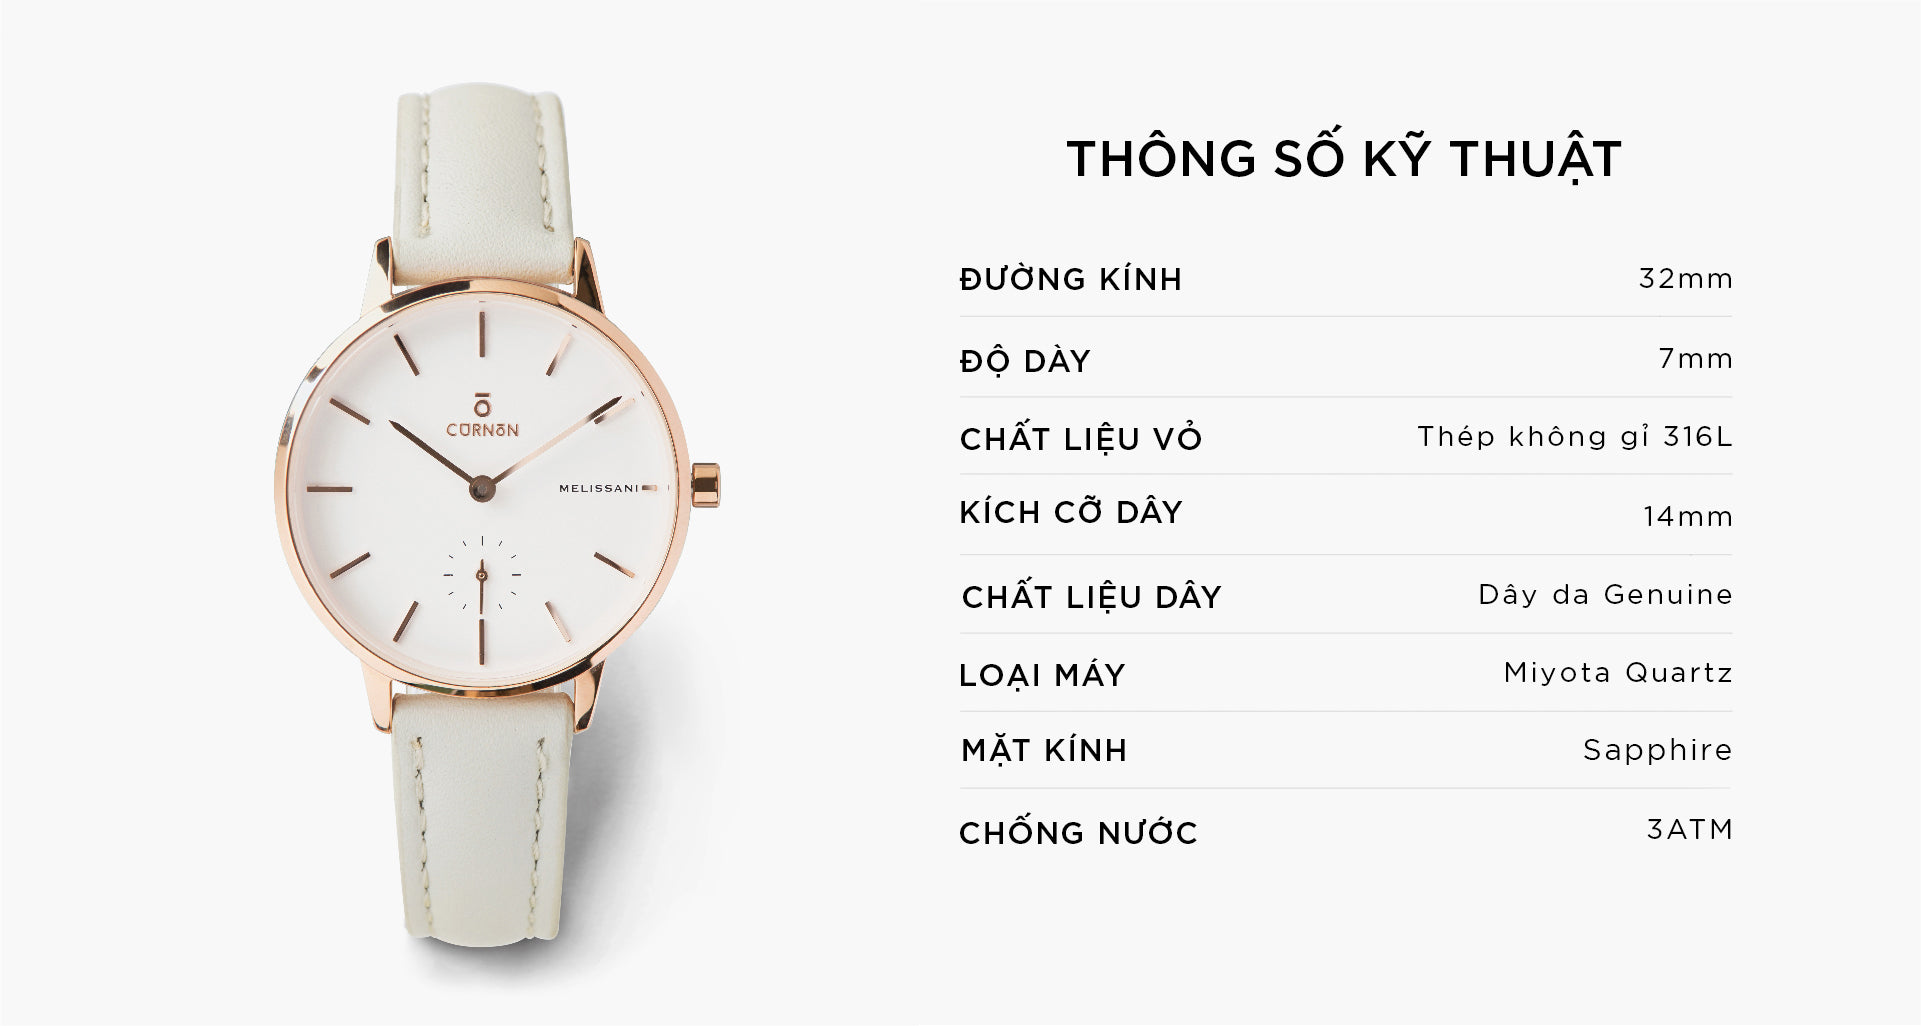 Đồng Hồ Thời Trang Melissani Rosegold - Ice - Curnon Watch